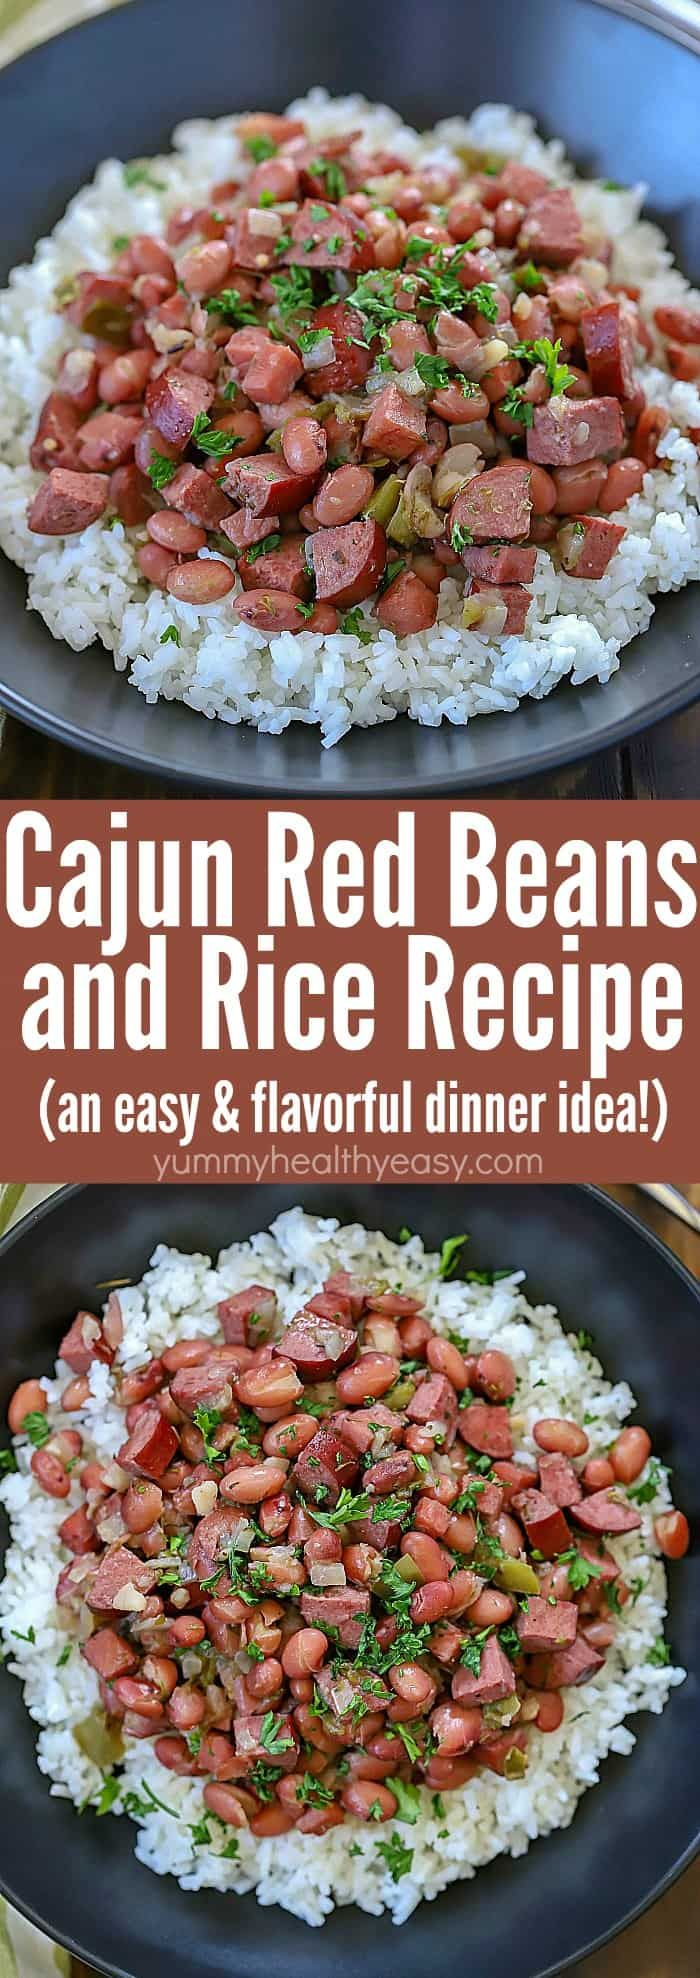 Spice your dinner up tonight and make this Cajun Red Beans and Rice Recipe! Slow cook beans, ham, turkey sausage and spices in a skillet to let the flavors combine. Serve over rice for a delicious dinner the whole family will fall in love with! #beans #rice #recipe #easy #dinnerrecipe #ham #sausage #redbeans #slowcooked via @jennikolaus #easysausagerecipes